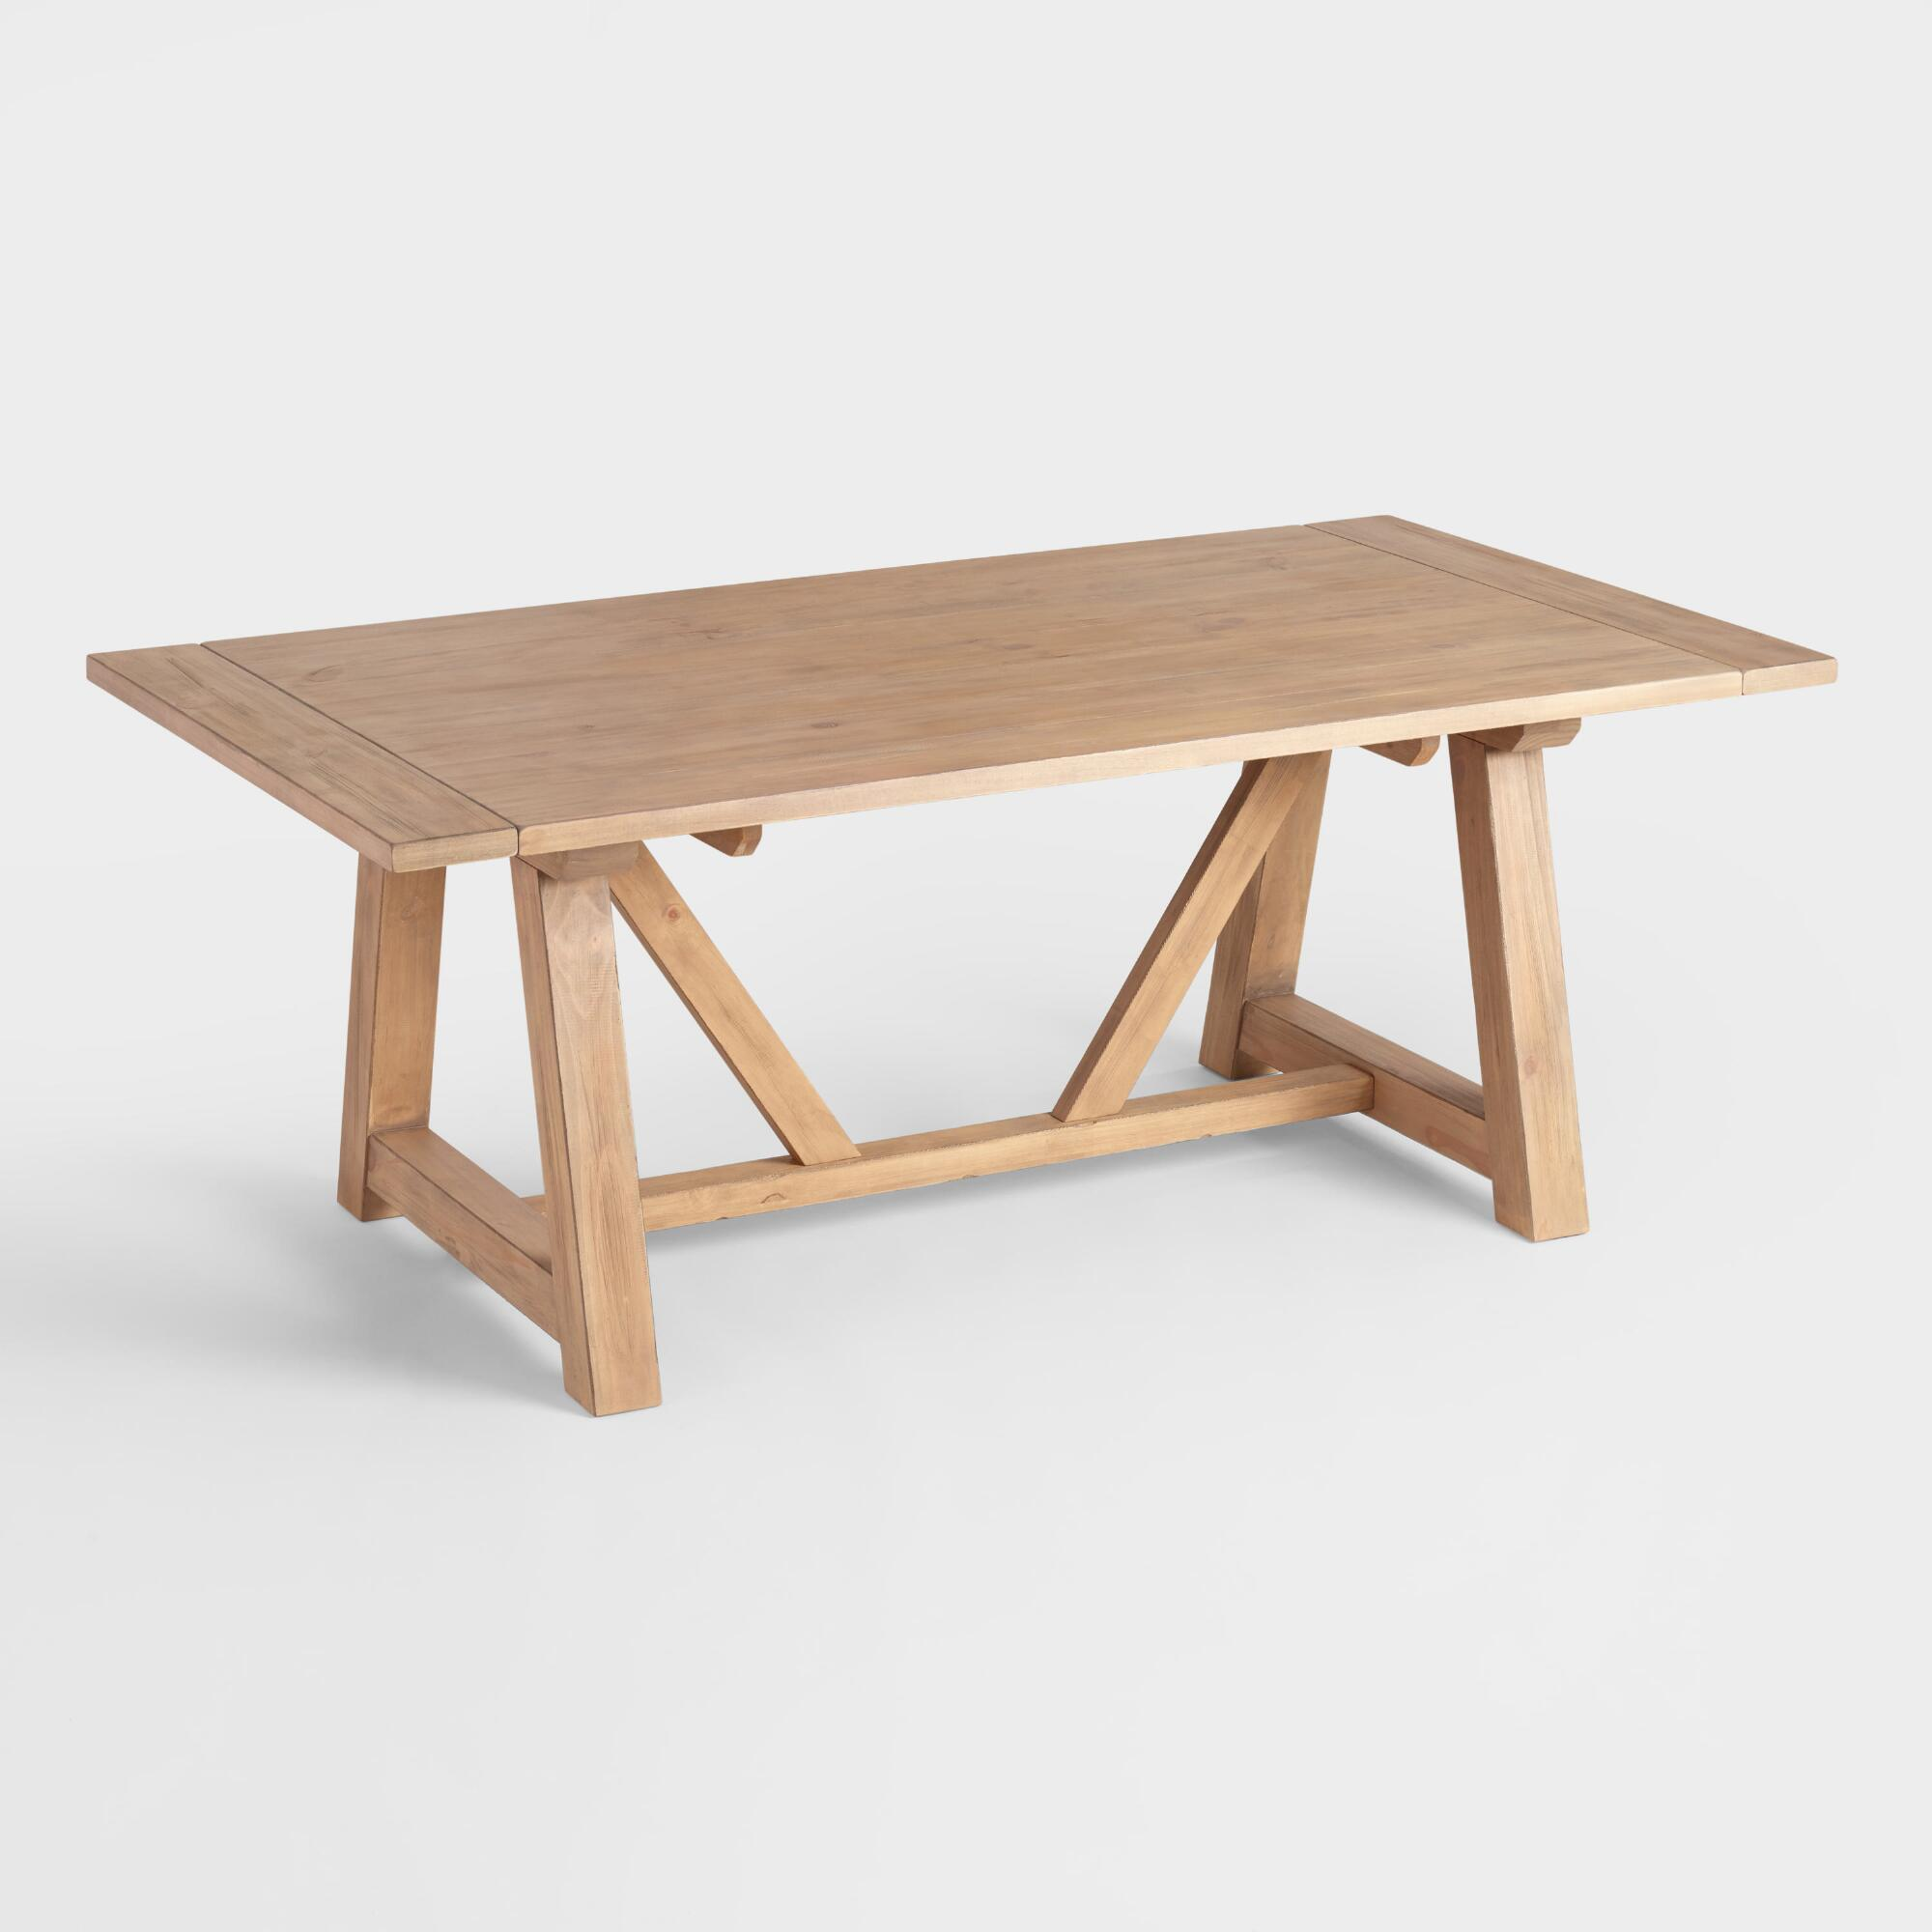 tables johnny table products bench bassett number item janosik rectangle agamber agbridle made farmhouse